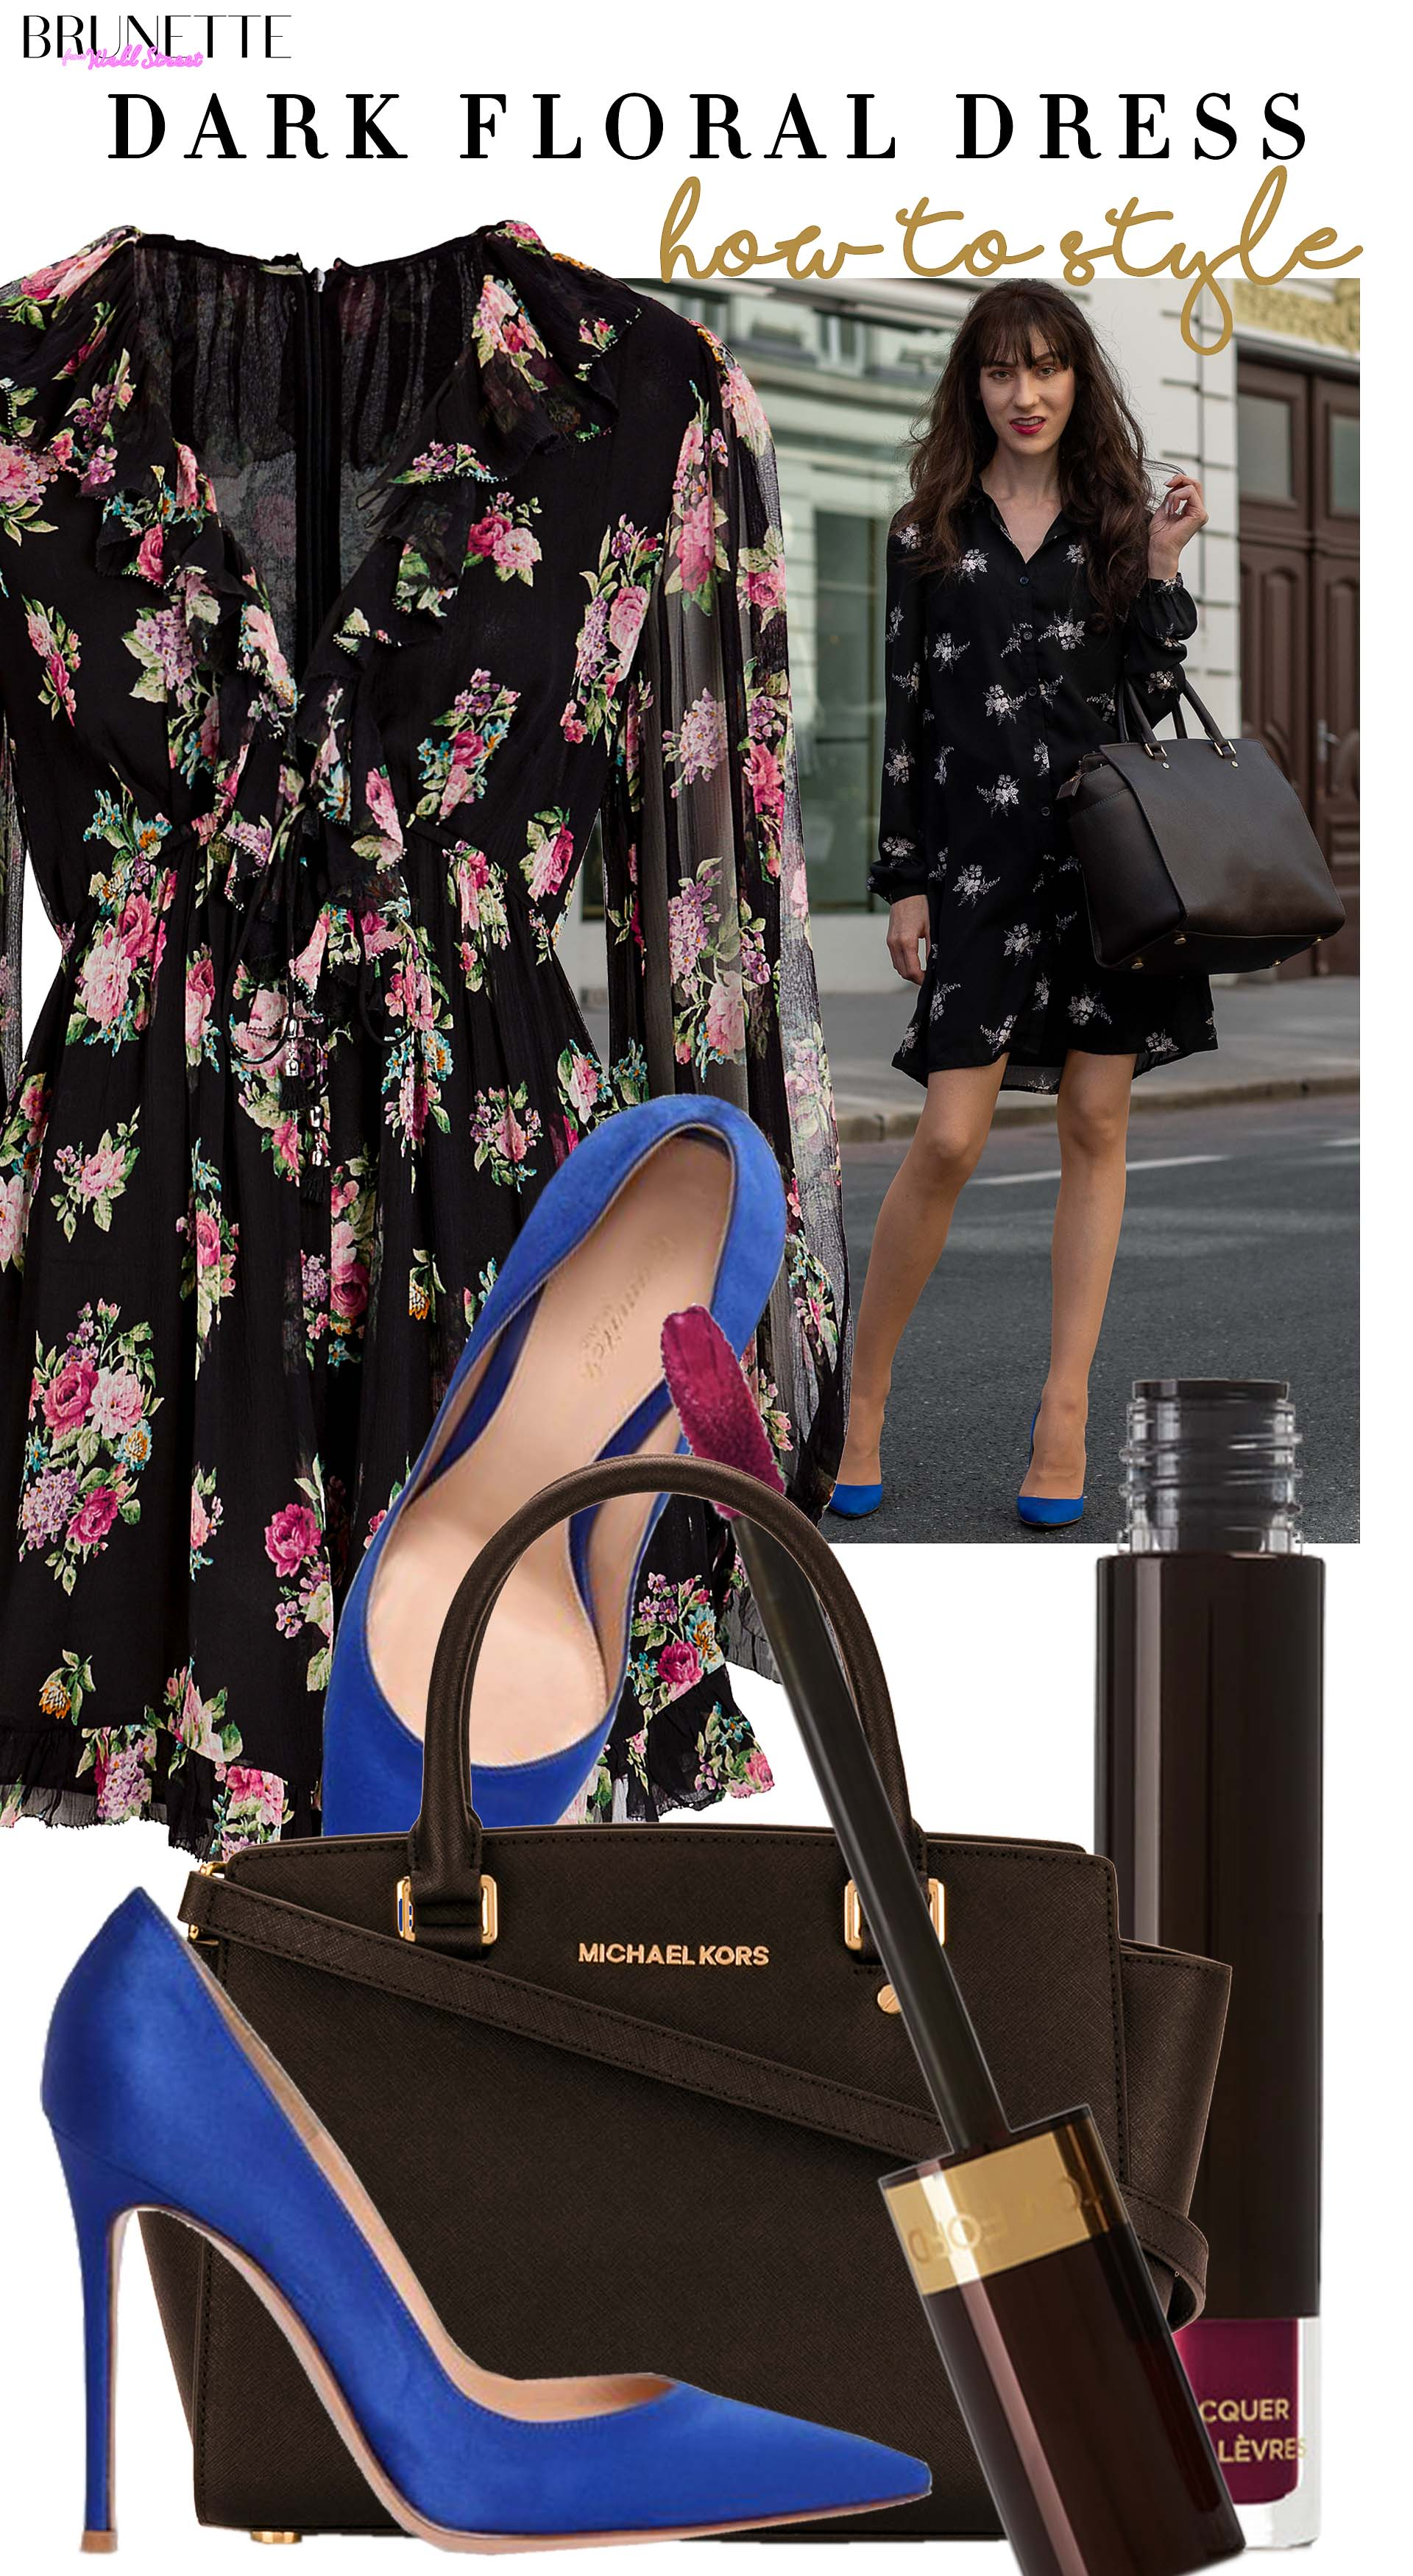 Brunette from Wall Street how to style dark floral summer dress for work